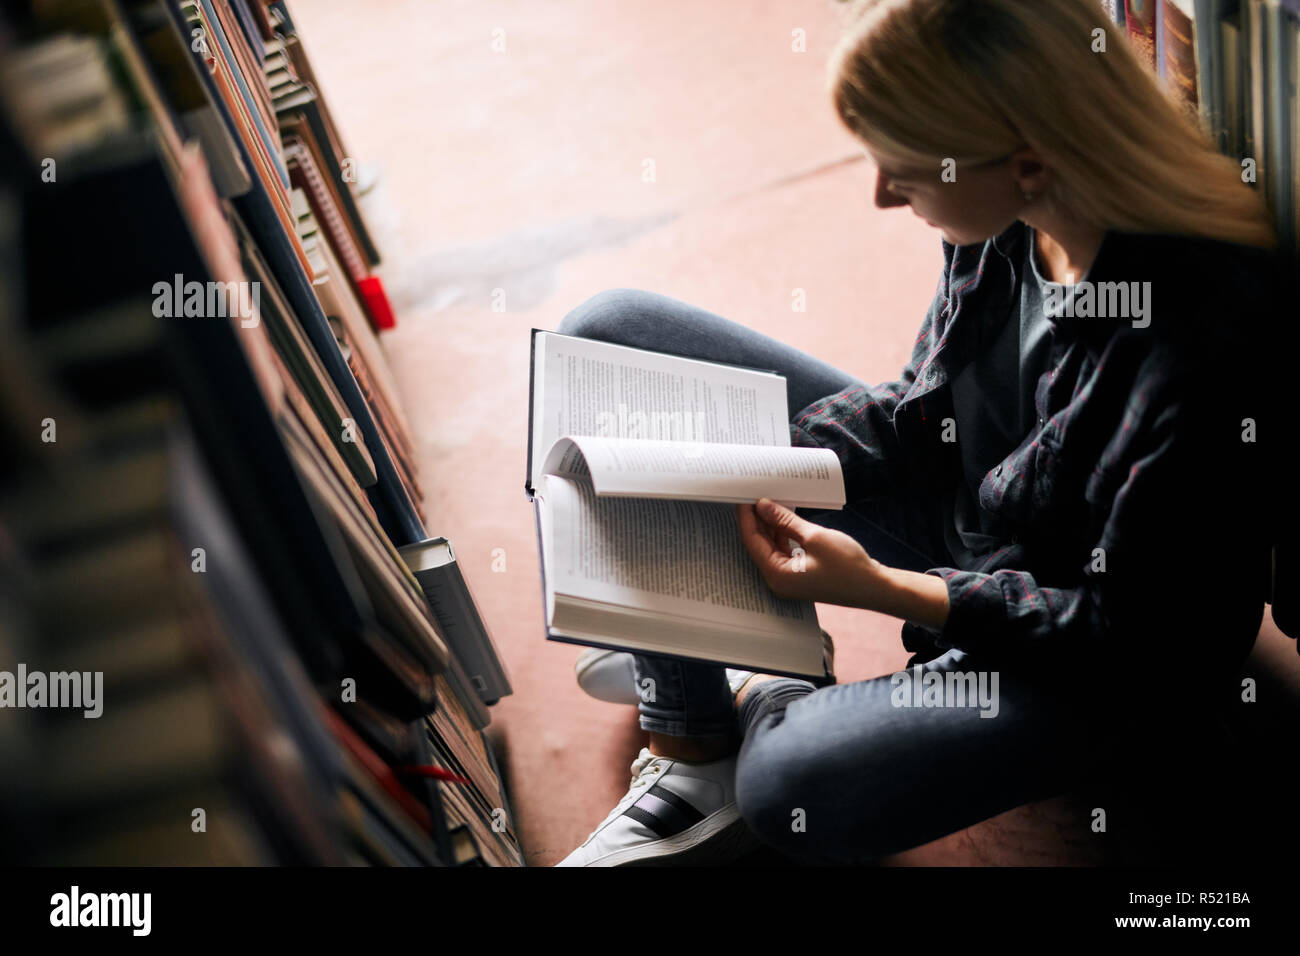 Young girl sitting on the floor in traditional library at bookshelves, reading books. Smiling and laughing student working with laptop, studying. Higher education. Student life - Stock Image